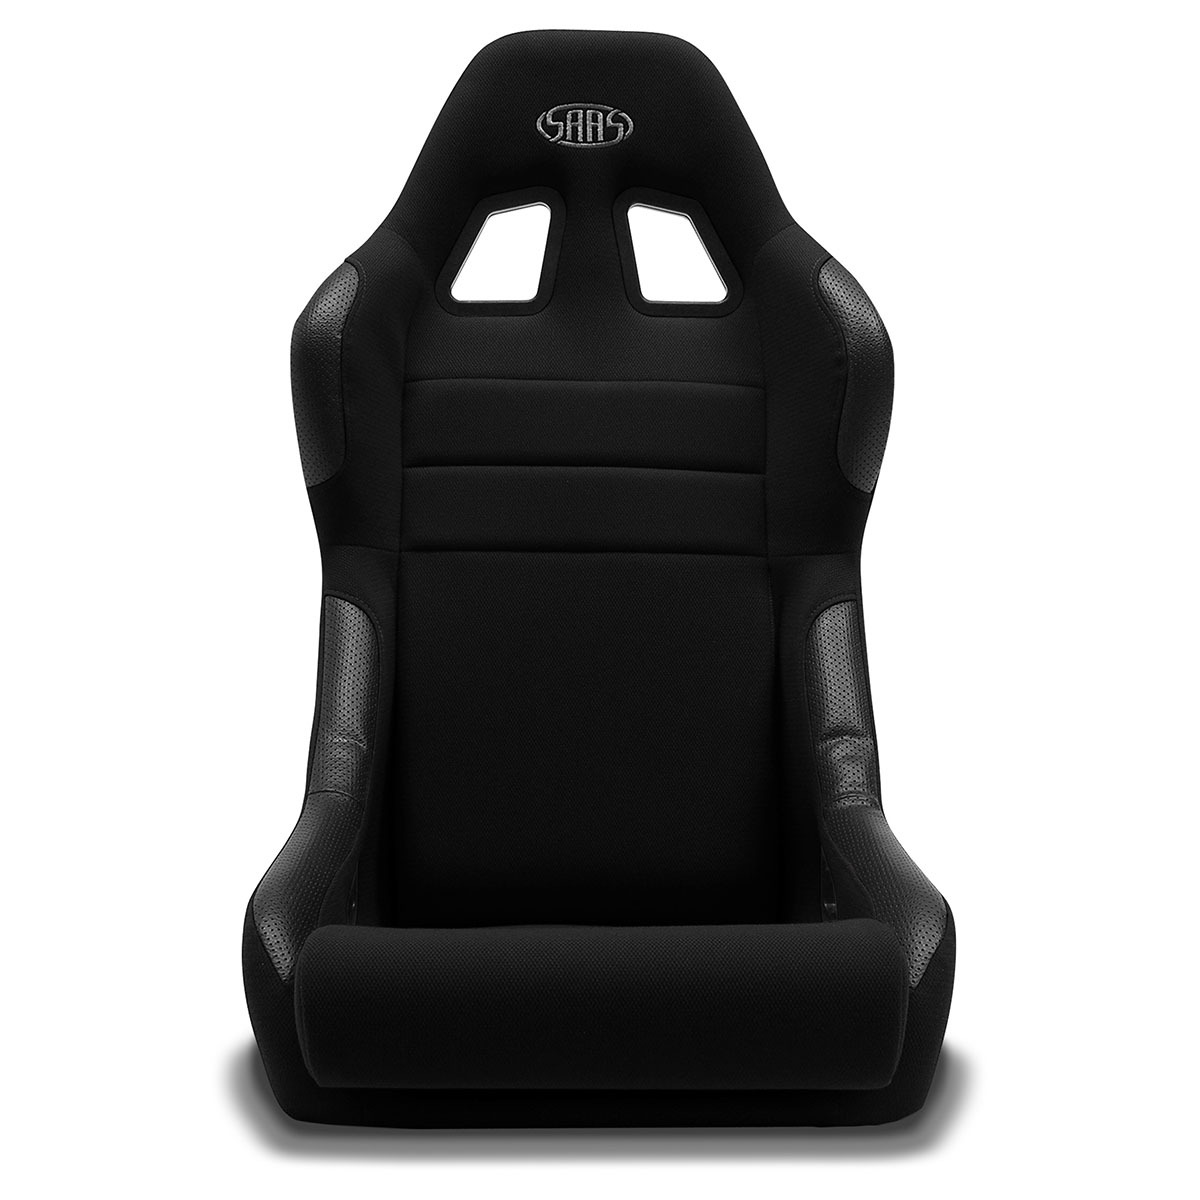 Seat Fixed Back Mach II Black ADR Compliant